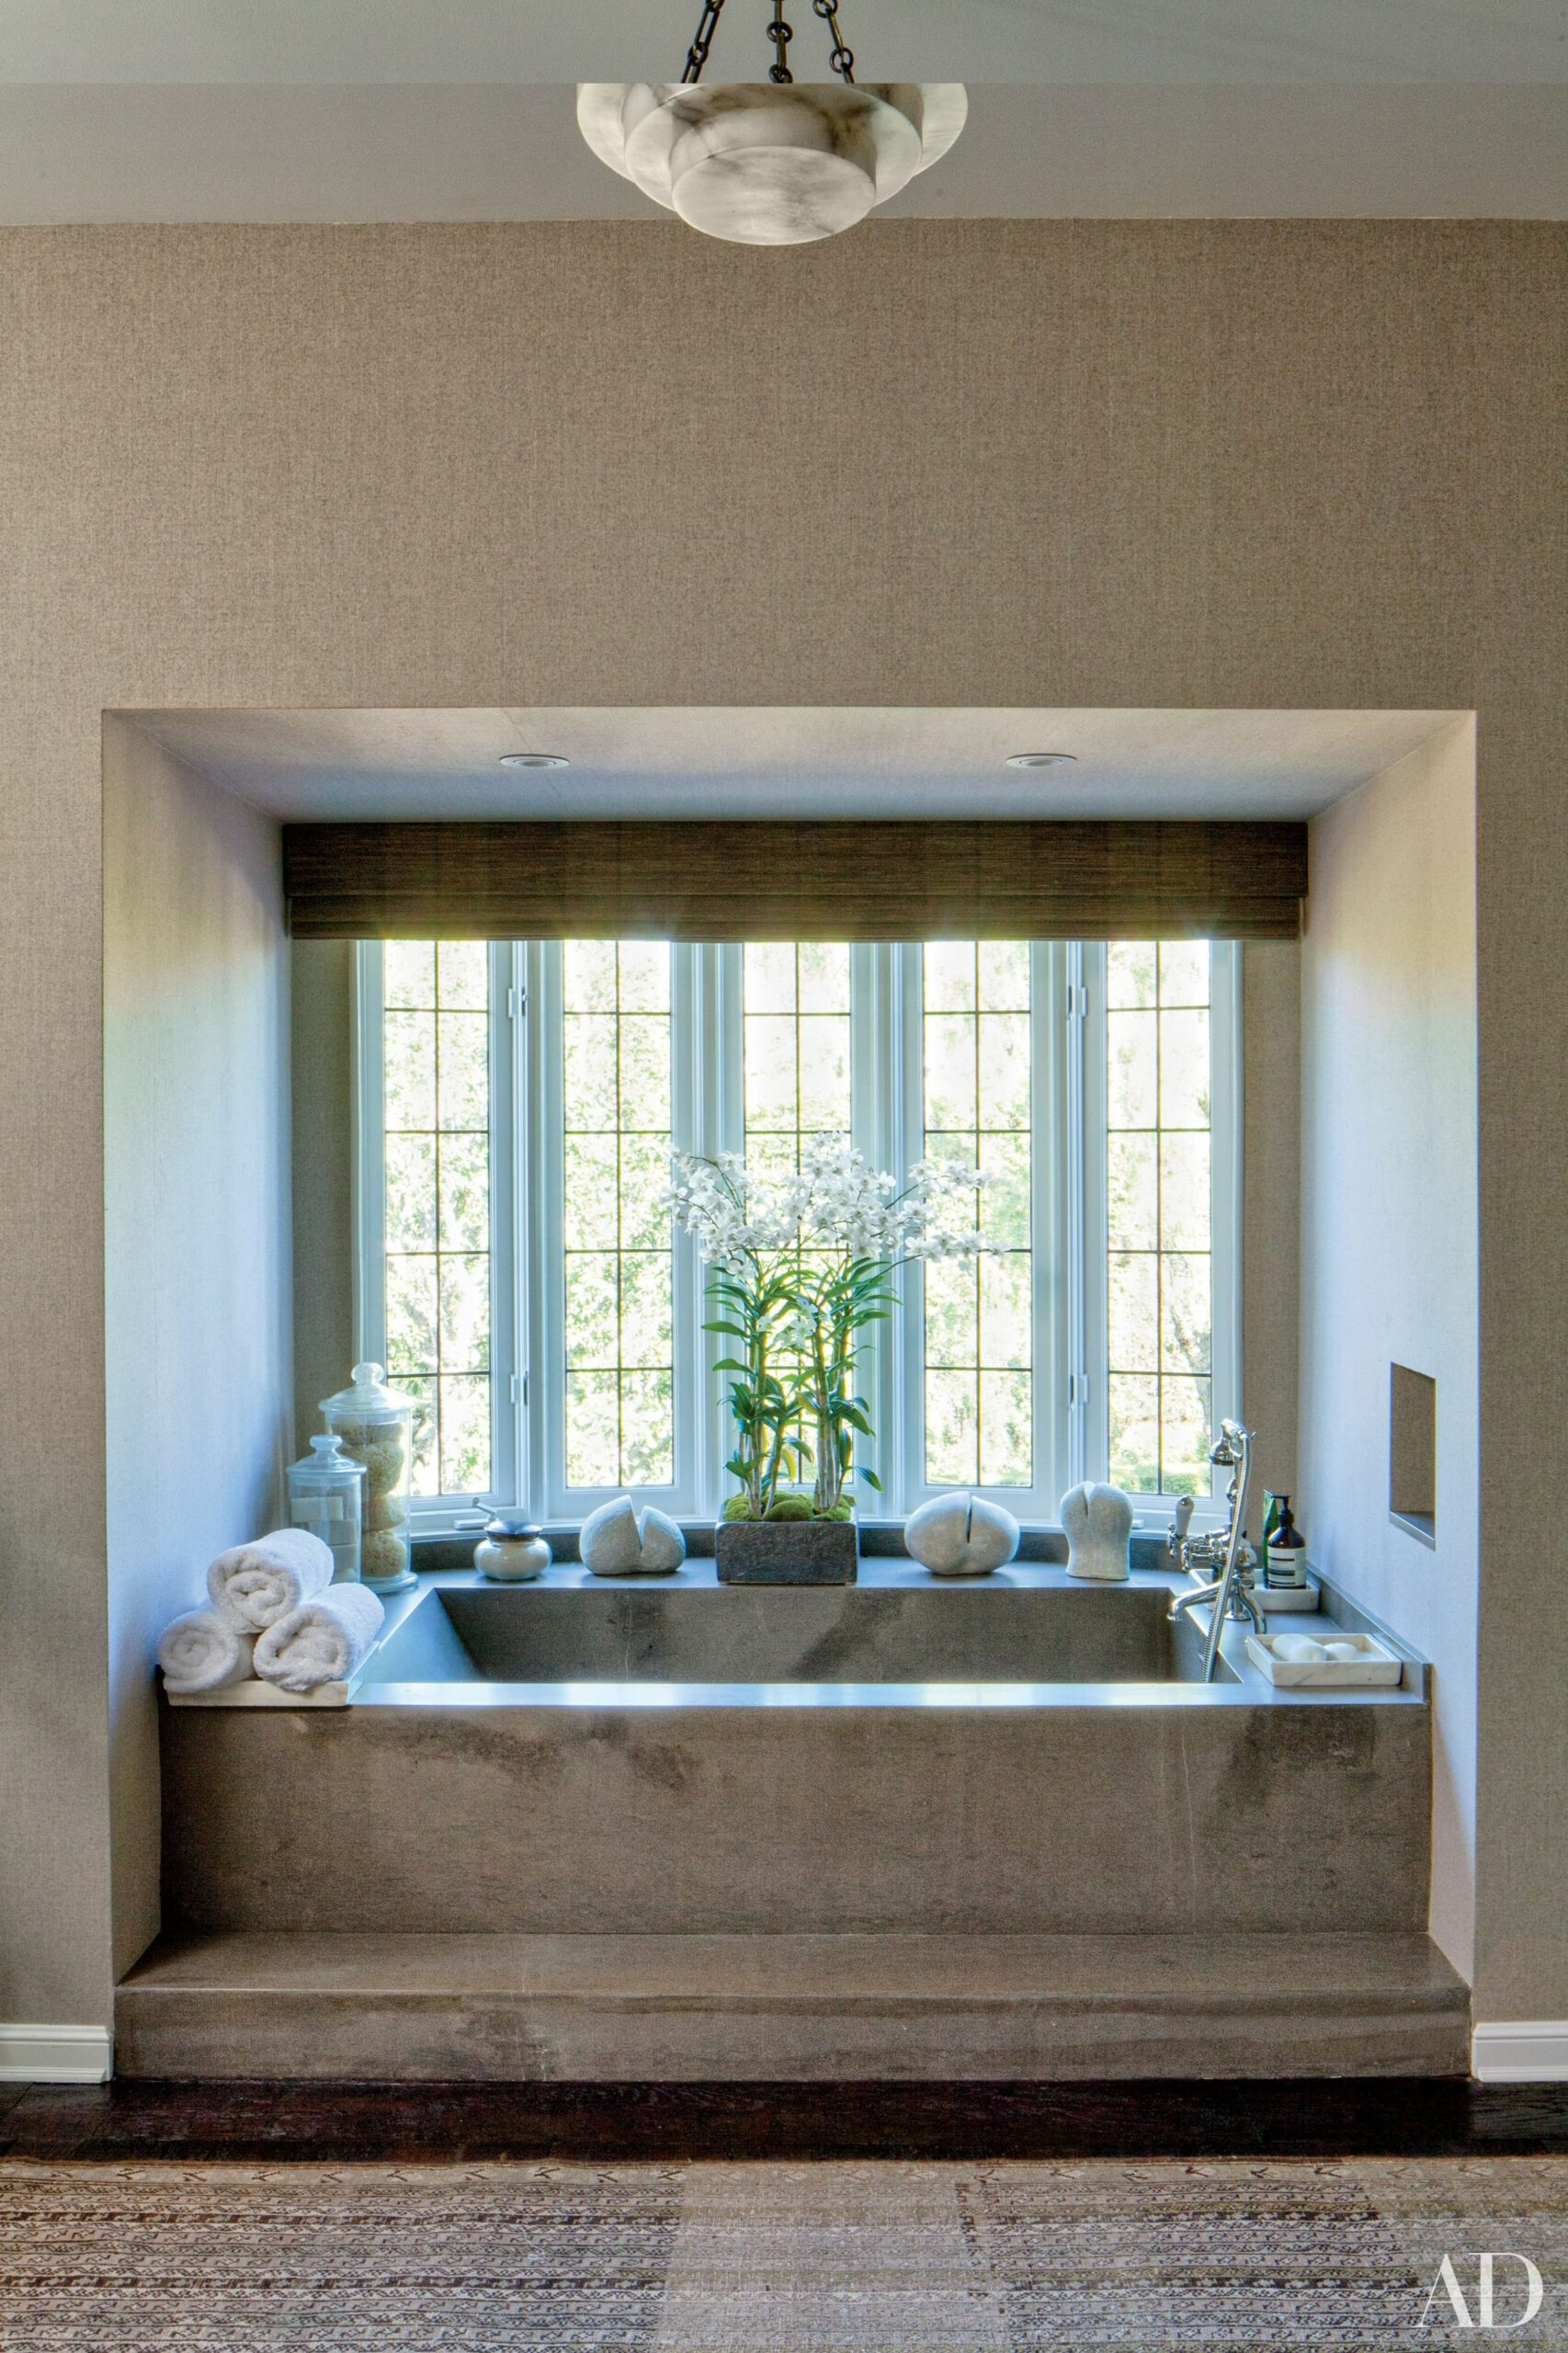 10 Bay Window Ideas That Make It Easy to Enjoy the View ..